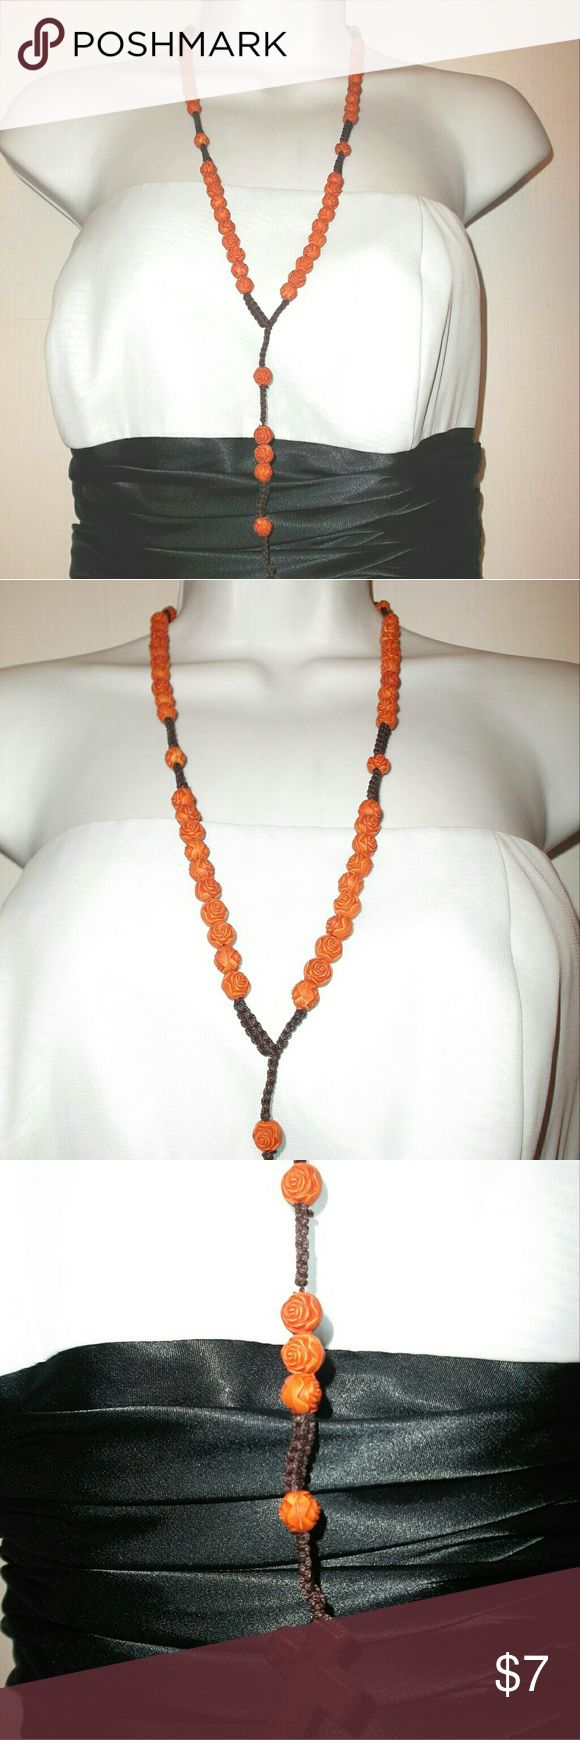 Rosary Beads Necklace in Orange Flowers This is a handmade new rosary Beads Necklace.   It is orange in color and the beads are resin flowers strung on nylon cord. The beads are set in decades and arranged just like a prayer rosary, so this necklace can be used for prayer. Measures 20 inches end to end.   The cross is a resin material. I have other colors available!  Please, no offers except with bundles. Jewelry Necklaces